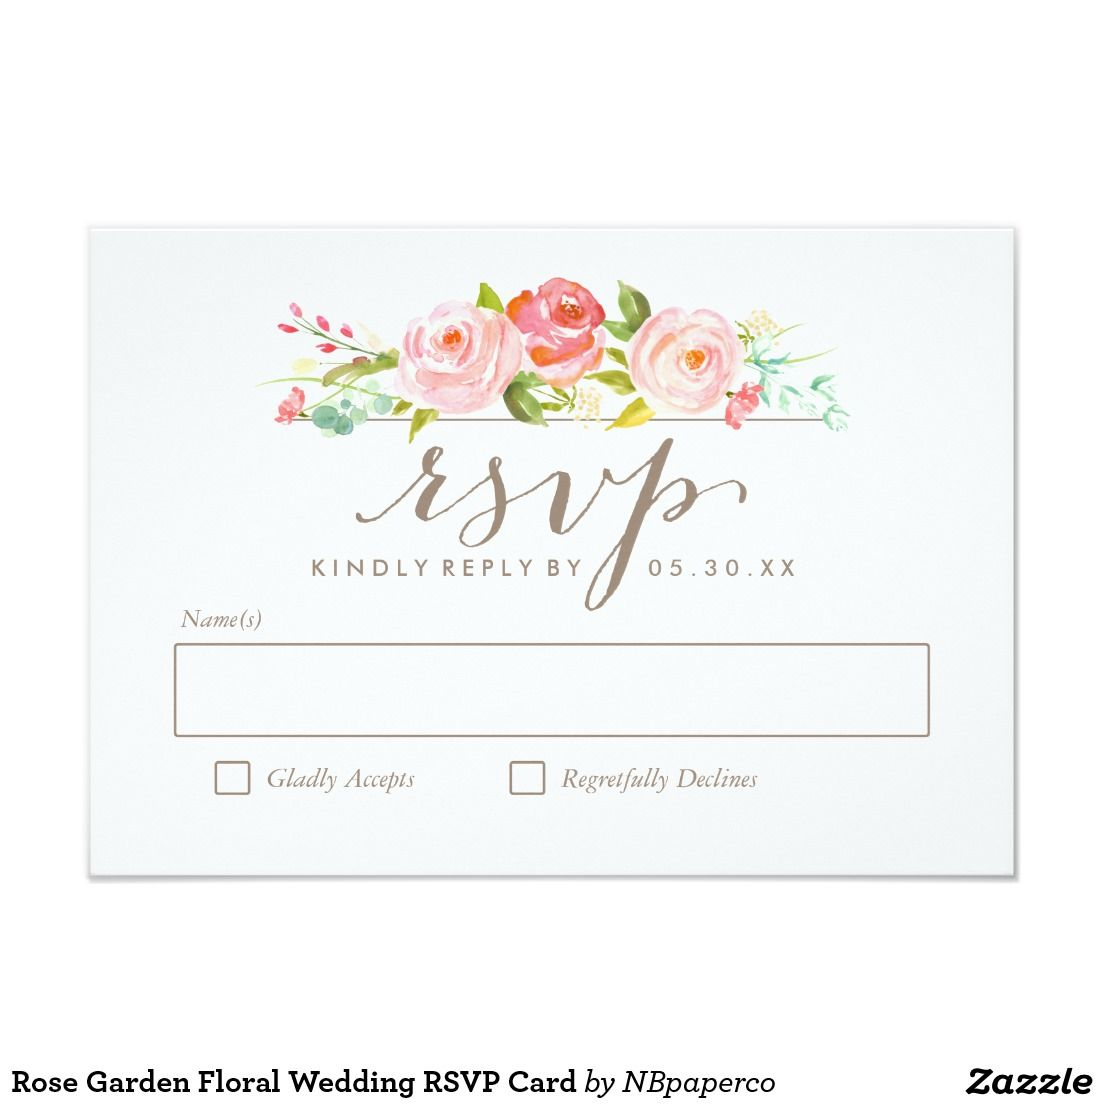 Rose Garden Floral Wedding Rsvp Card Gardens Wedding And Roses Garden